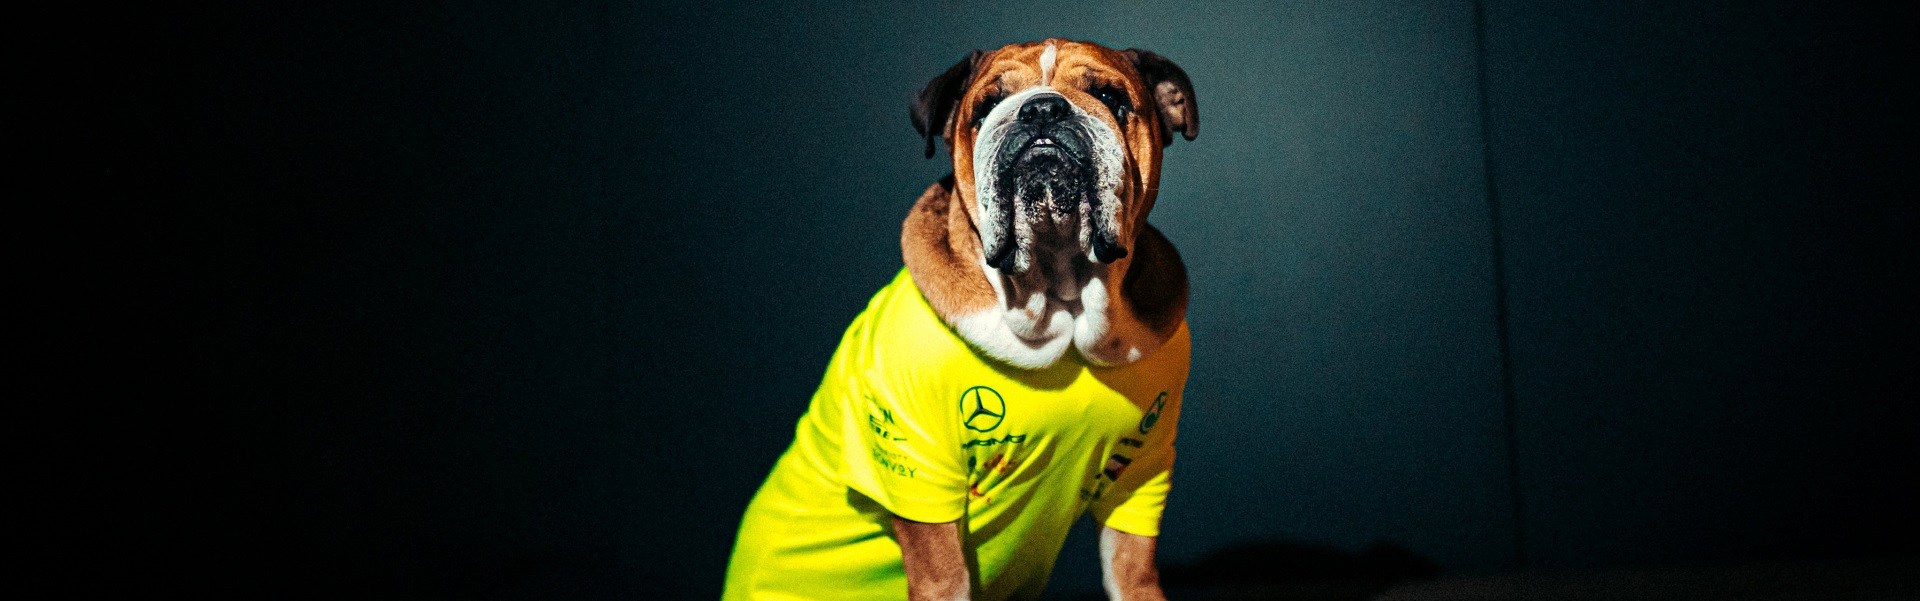 5 facts about Lewis Hamilton's beloved dog Roscoe!